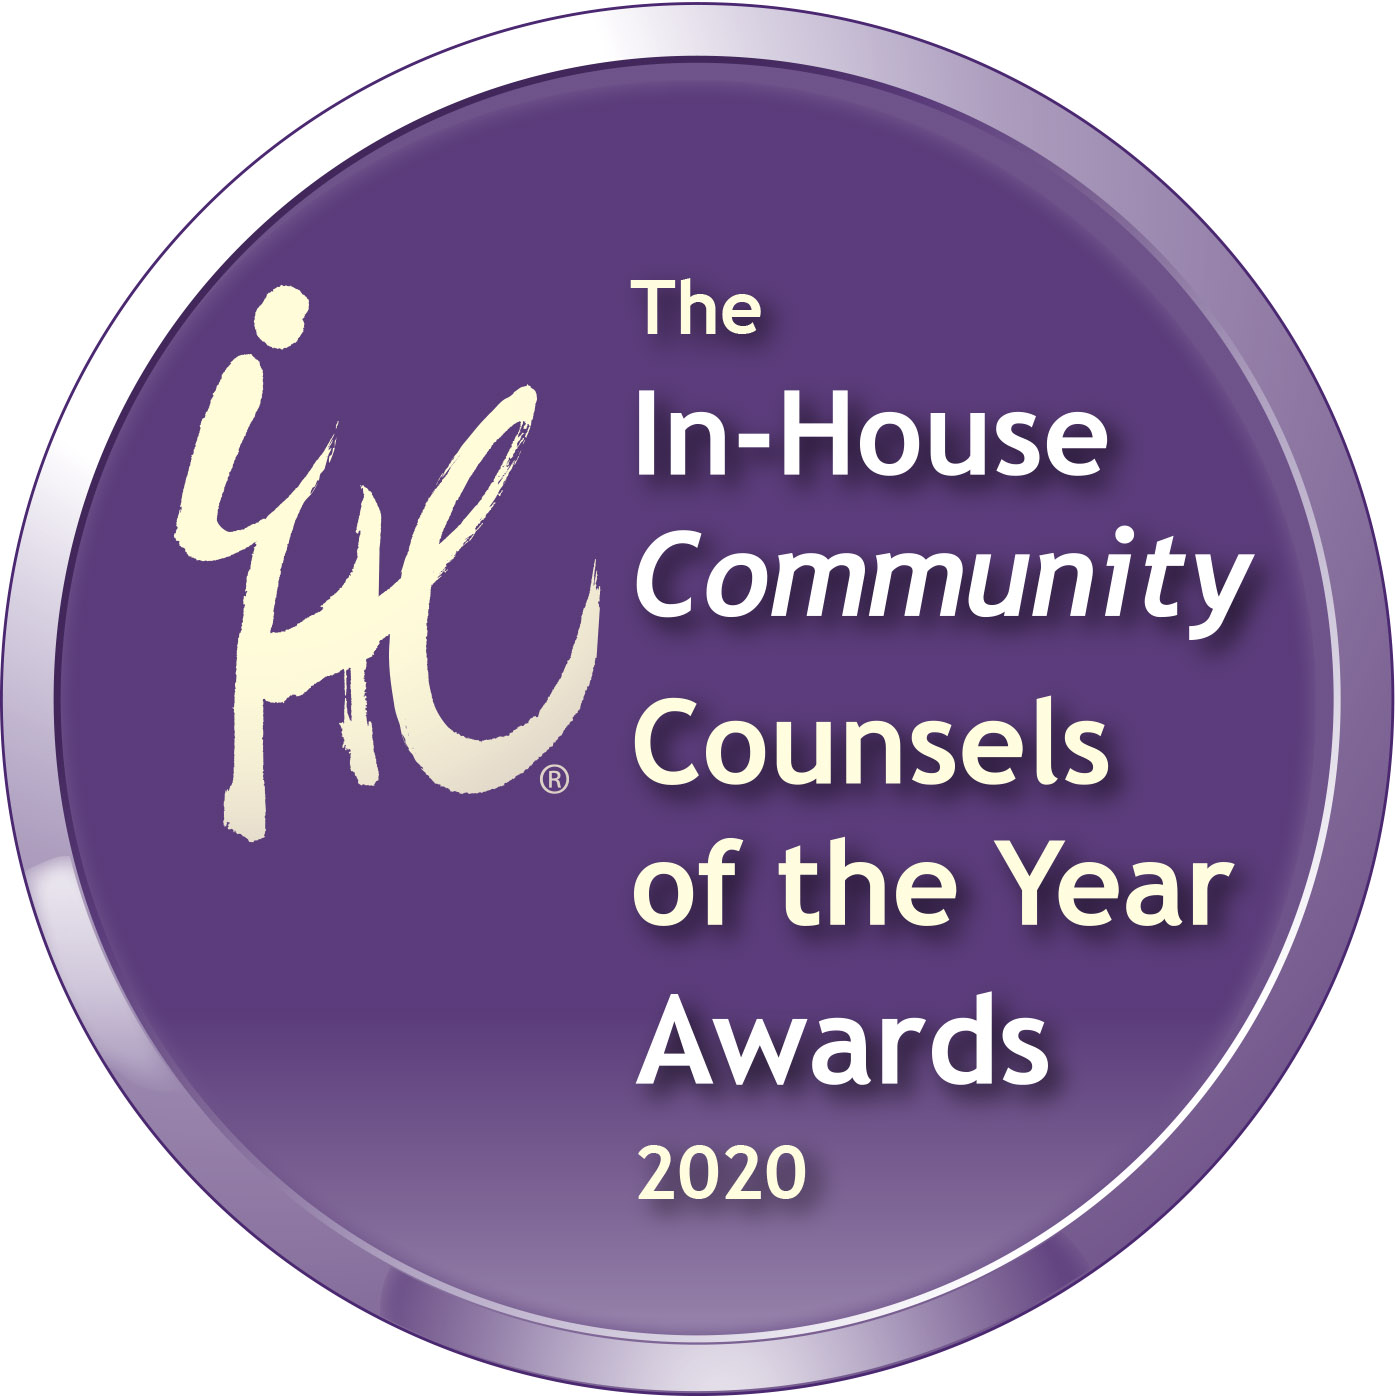 Counsel of the Year awards 2020